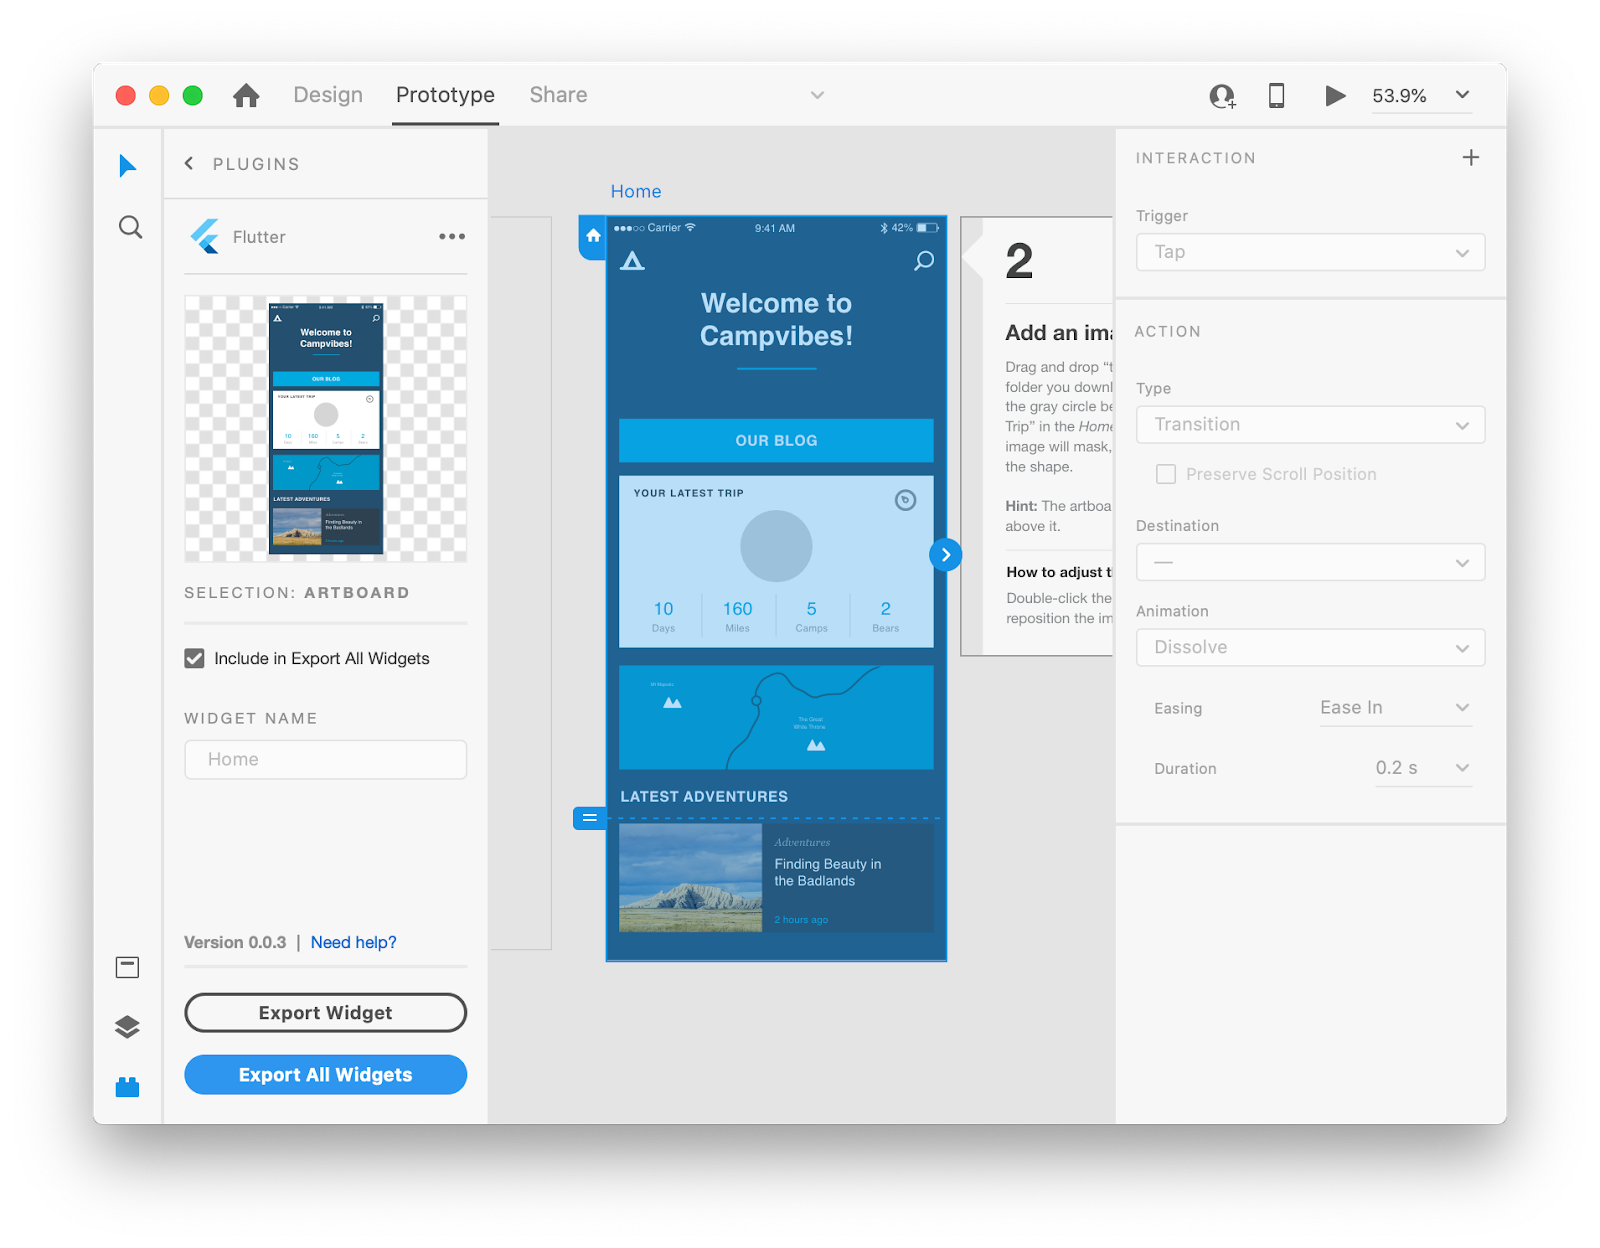 Adobe XD support for Flutter. Create in XD and export to Flutter code